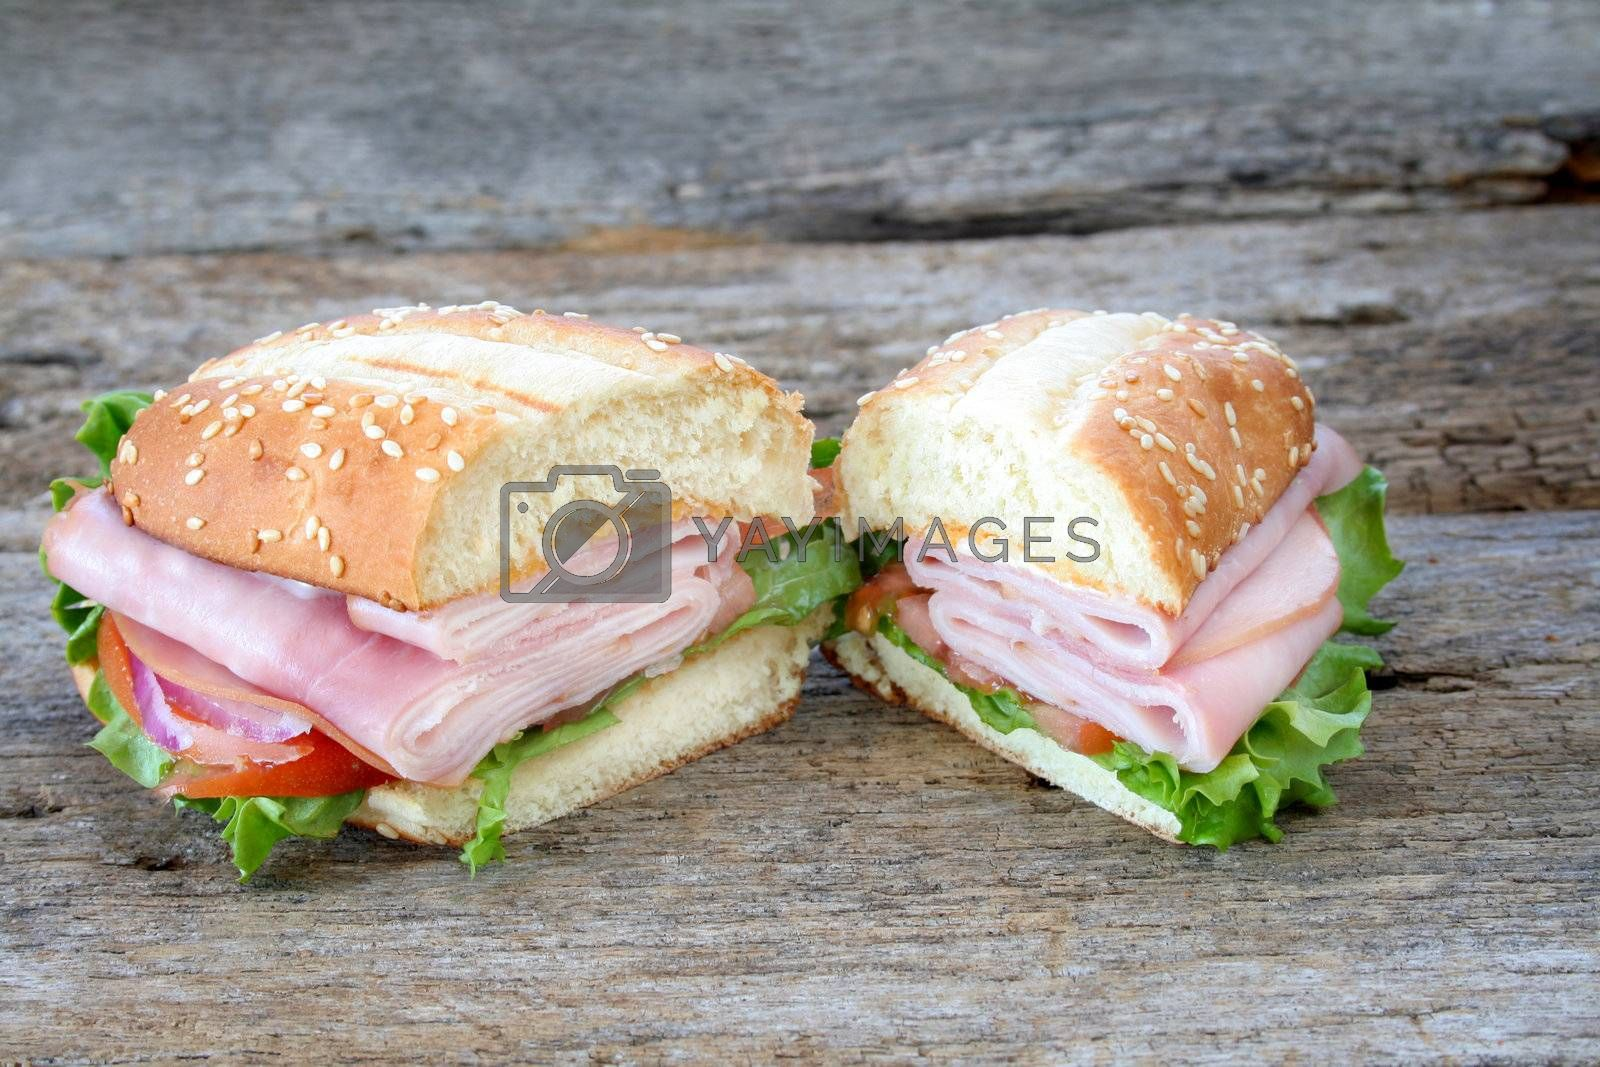 Ham sub/hoagie with all the fixings and cut in two.  Room for copy space.